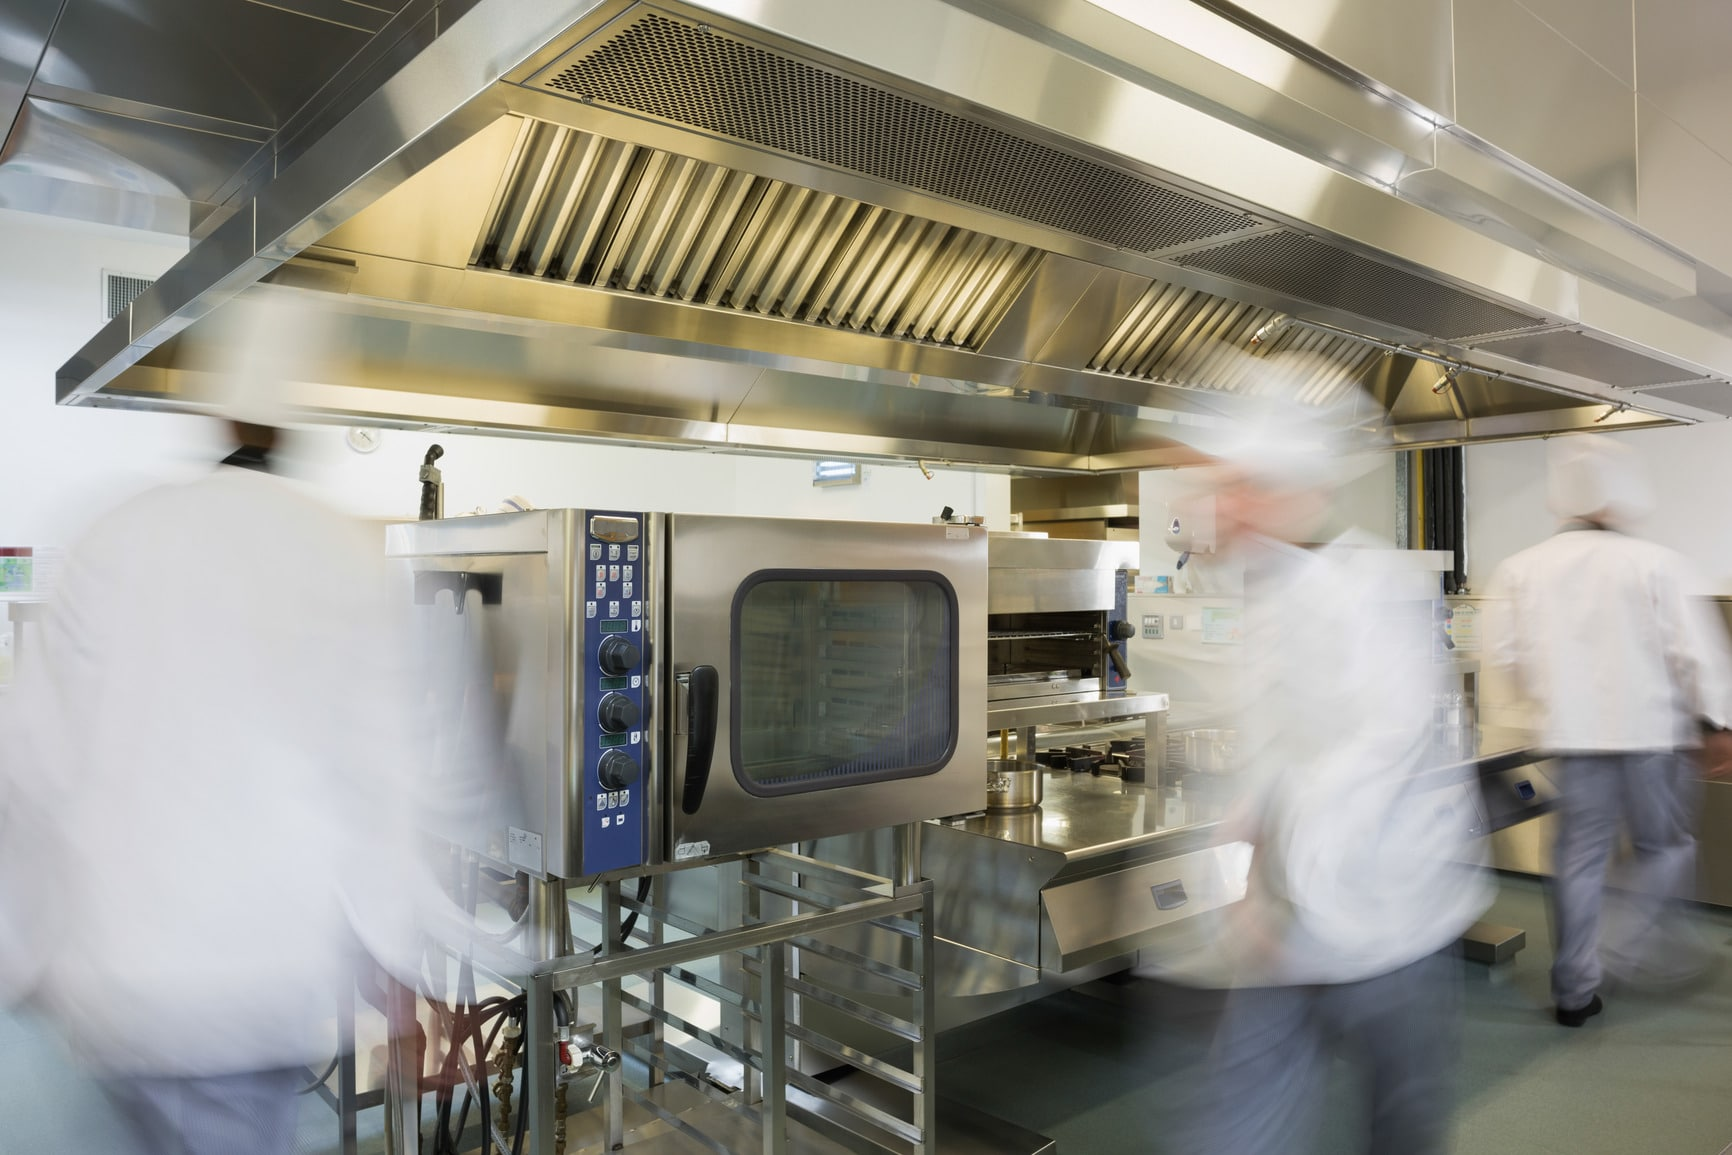 photodune-8475515-team-of-chefs-working-in-a-commercial-kitchen-at-a-hurried-pace-m1